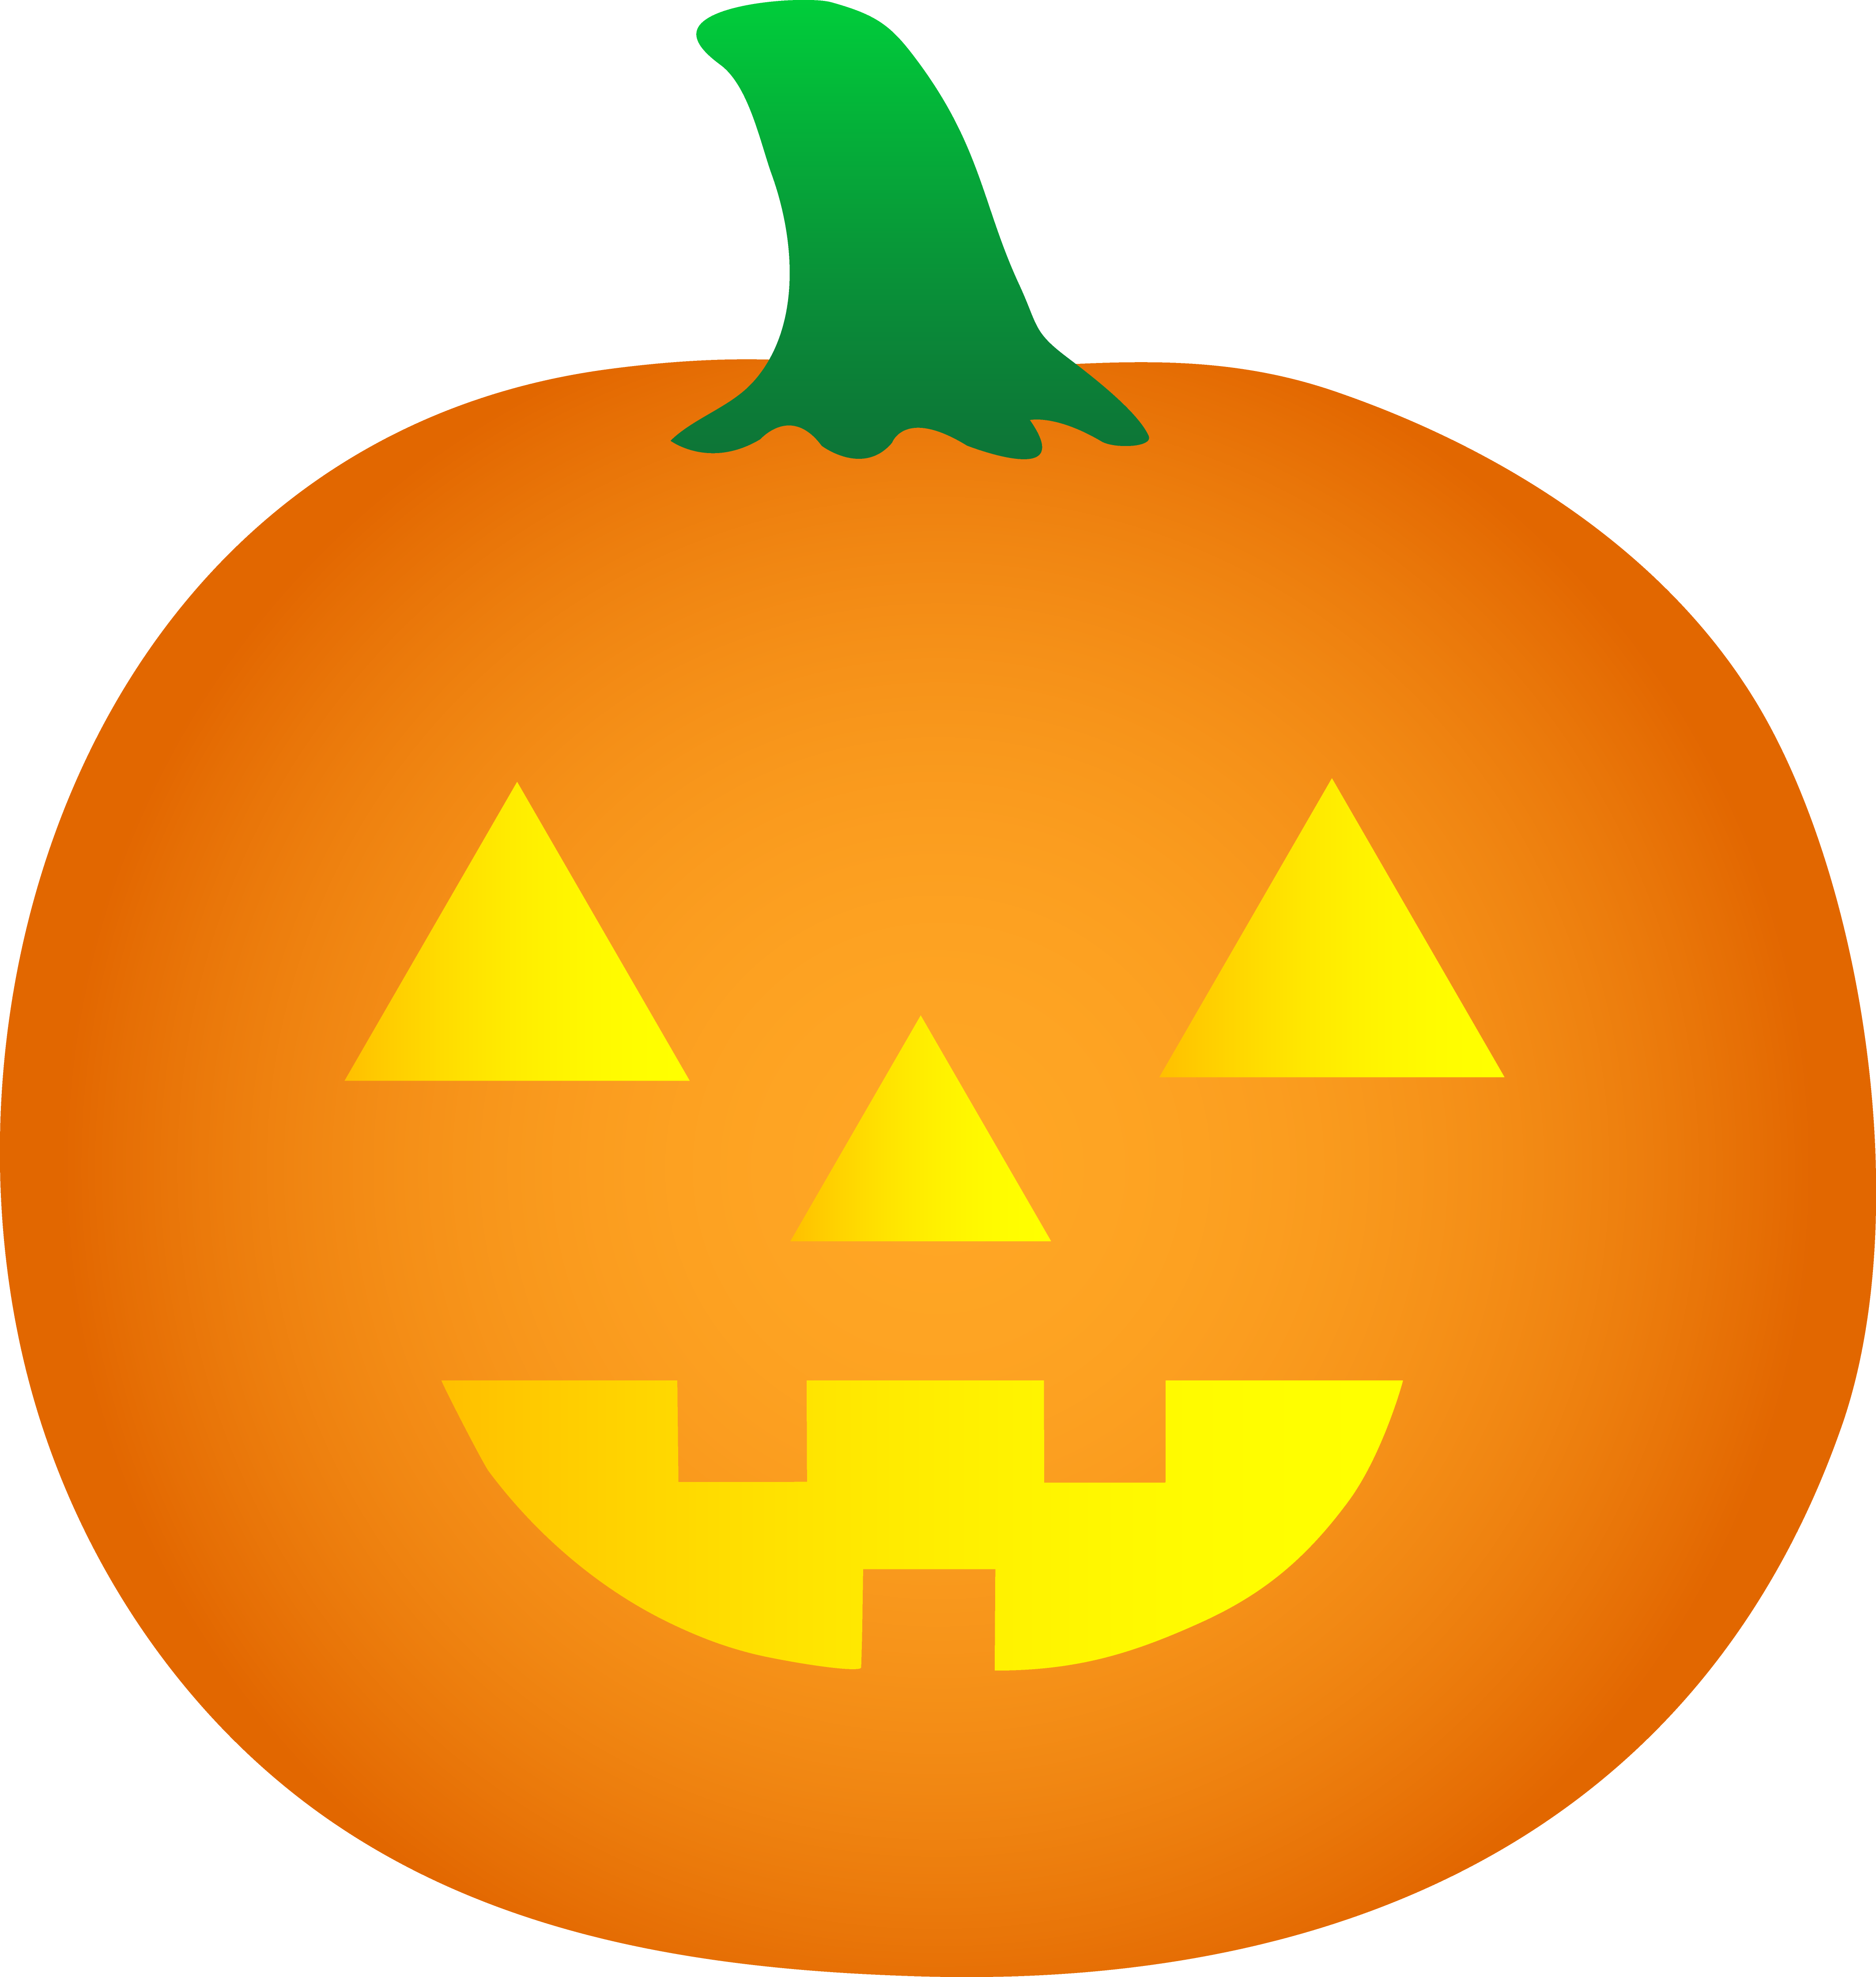 Happy pumpkin png. Images transparent free download